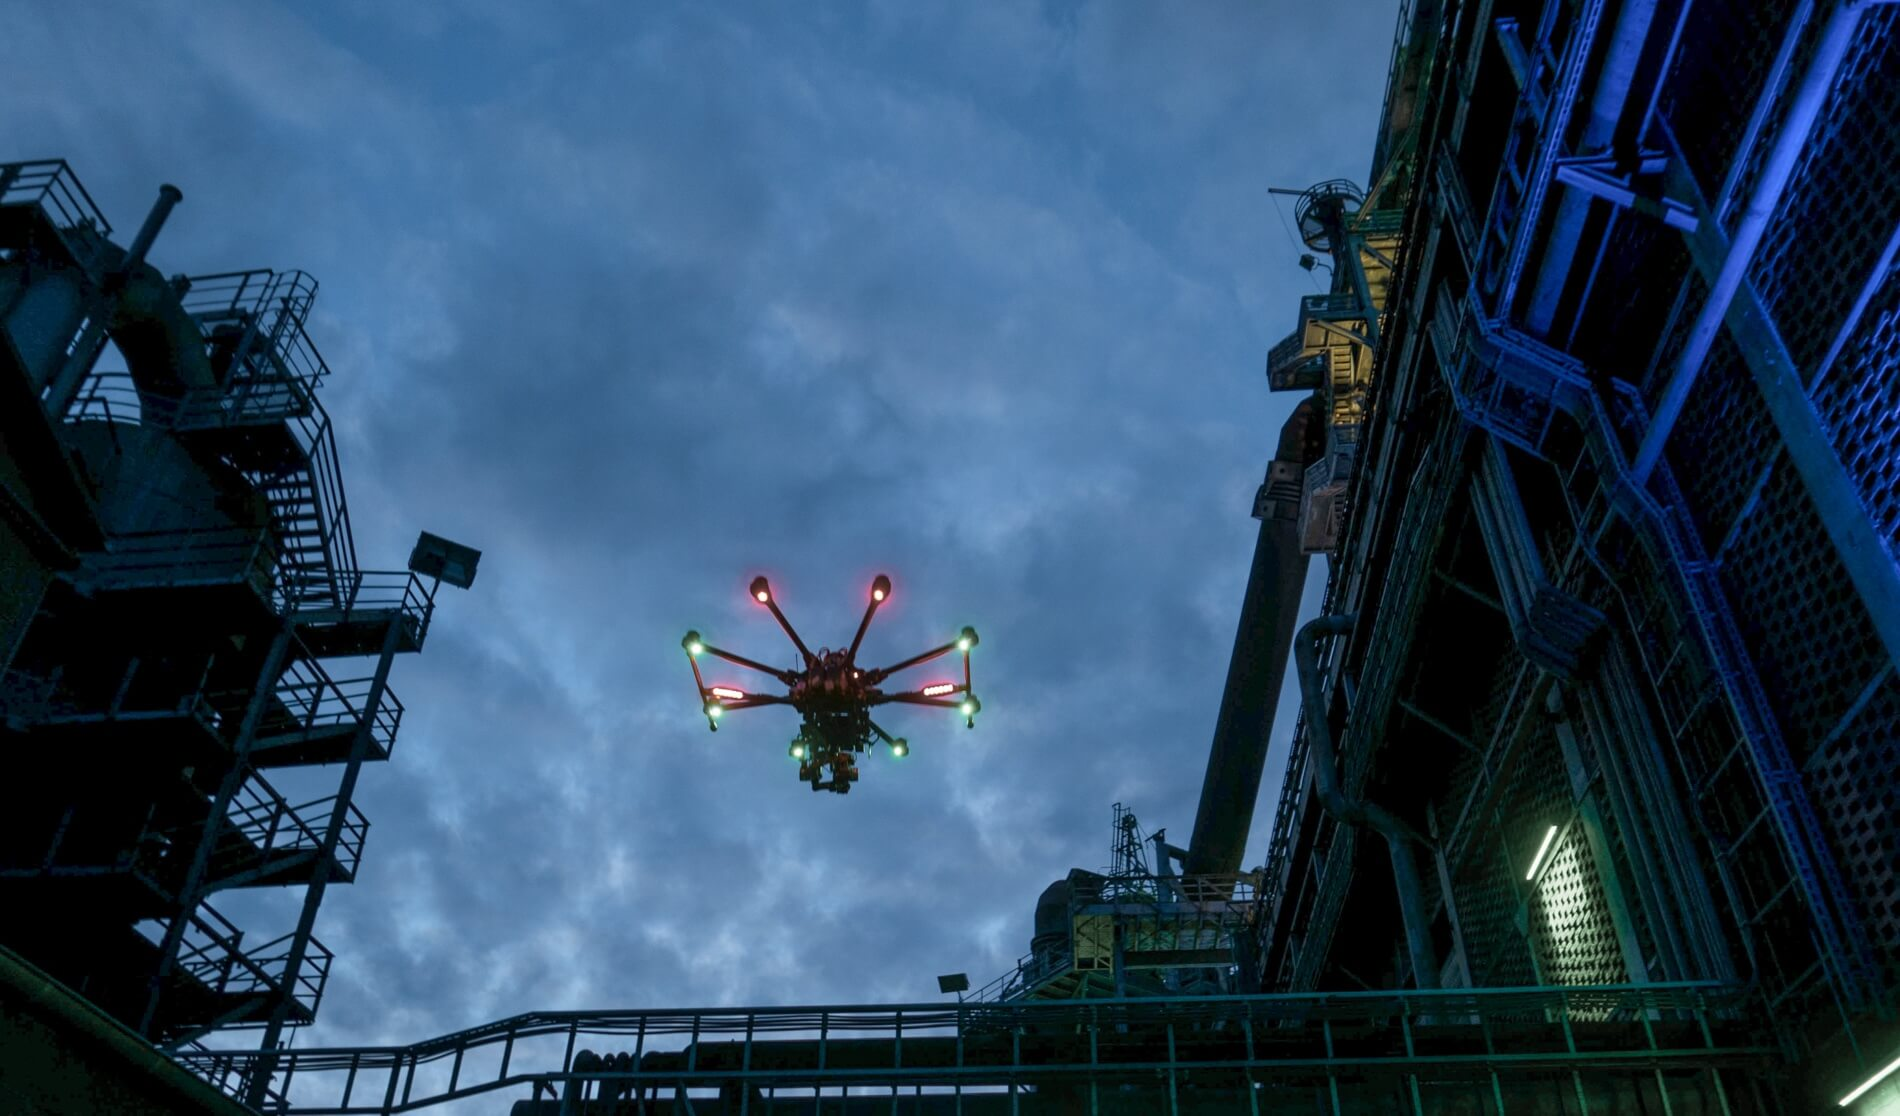 UAV inspection, monitoring using aerial images and pont clouds by LOGXON